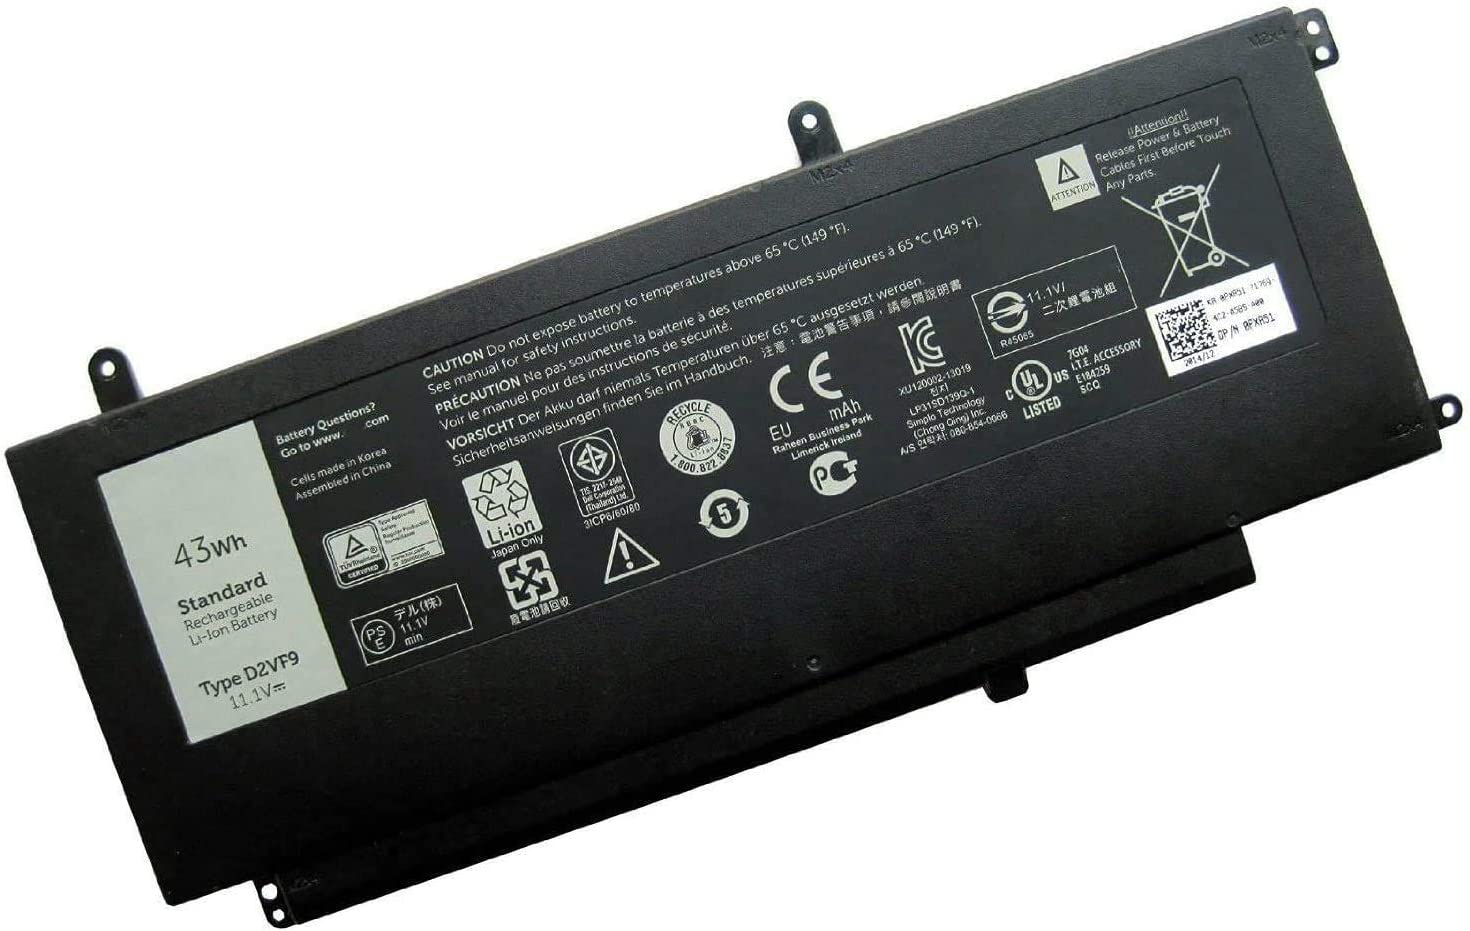 Batterymarket D2VF9 Laptop Battery Replacement for MSI GS63 GS63VR GS73 GS73VR 6RF Stealth Pro 6RF-001US BP-16K1-31 BTY-U6J Series (11.4V 64.98Wh)